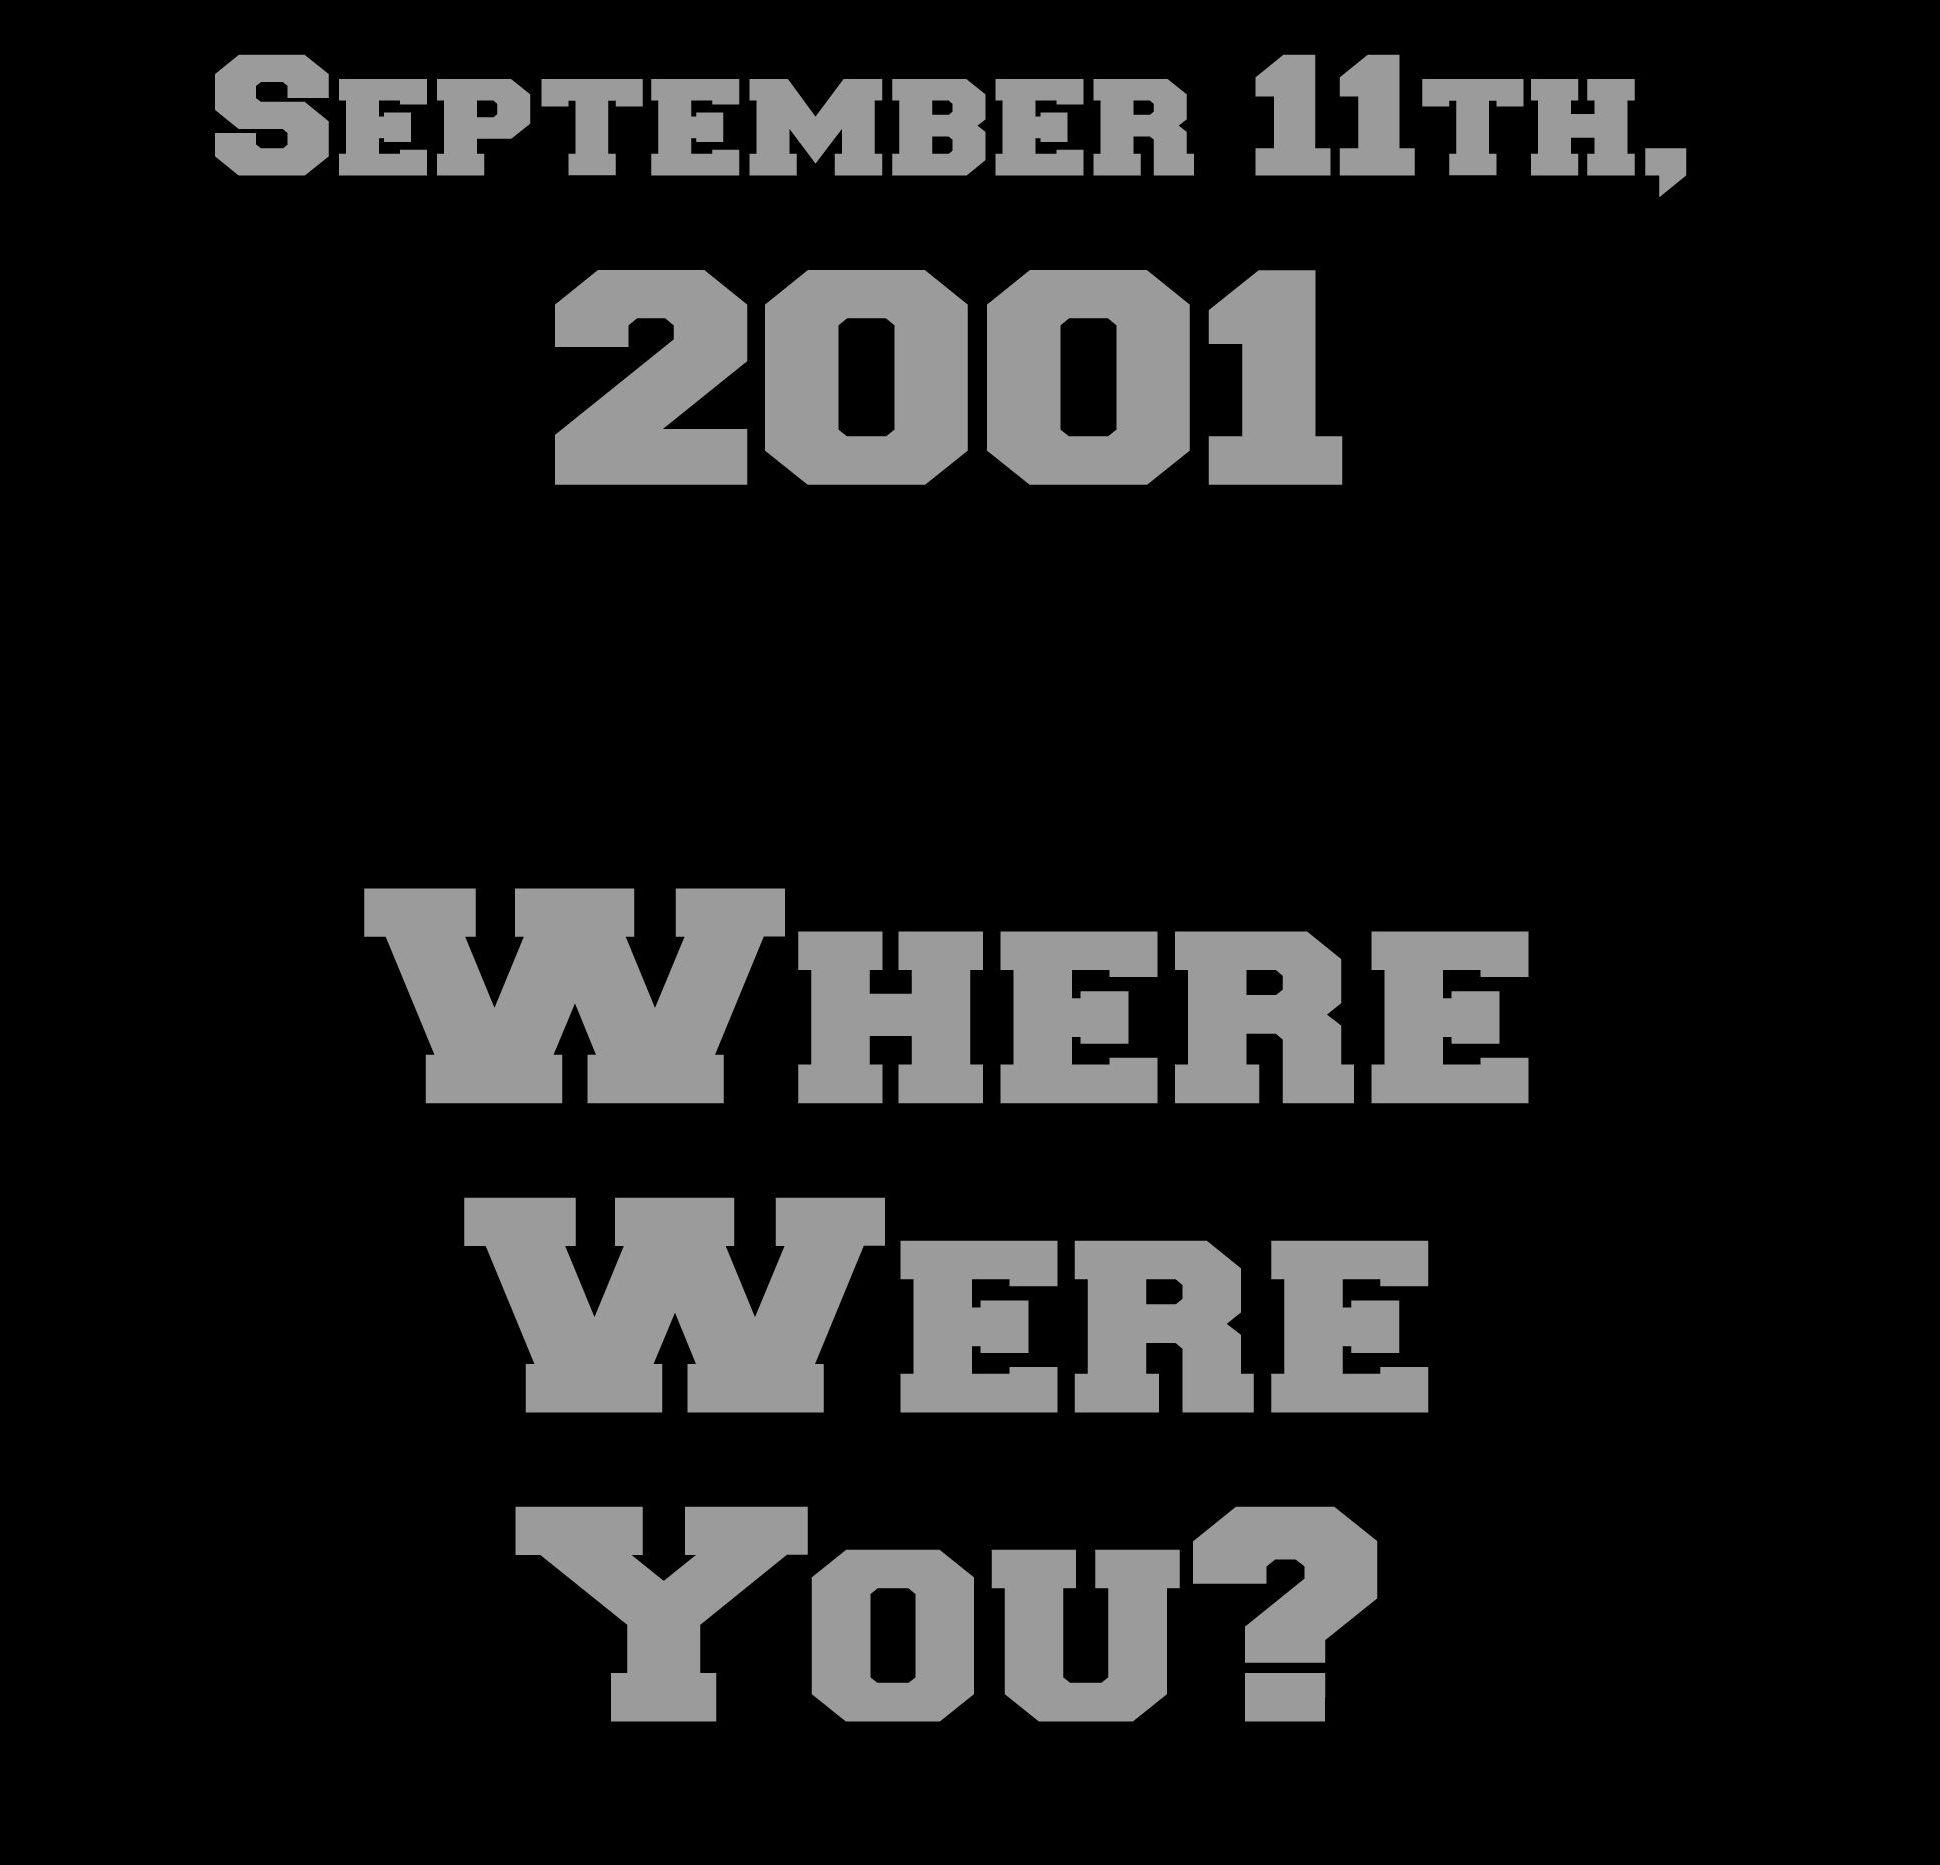 September 11th, 2001. Little did I know this day would change my life and the lives of all my fellow Americans forever! Where were you? #TxHomesteader